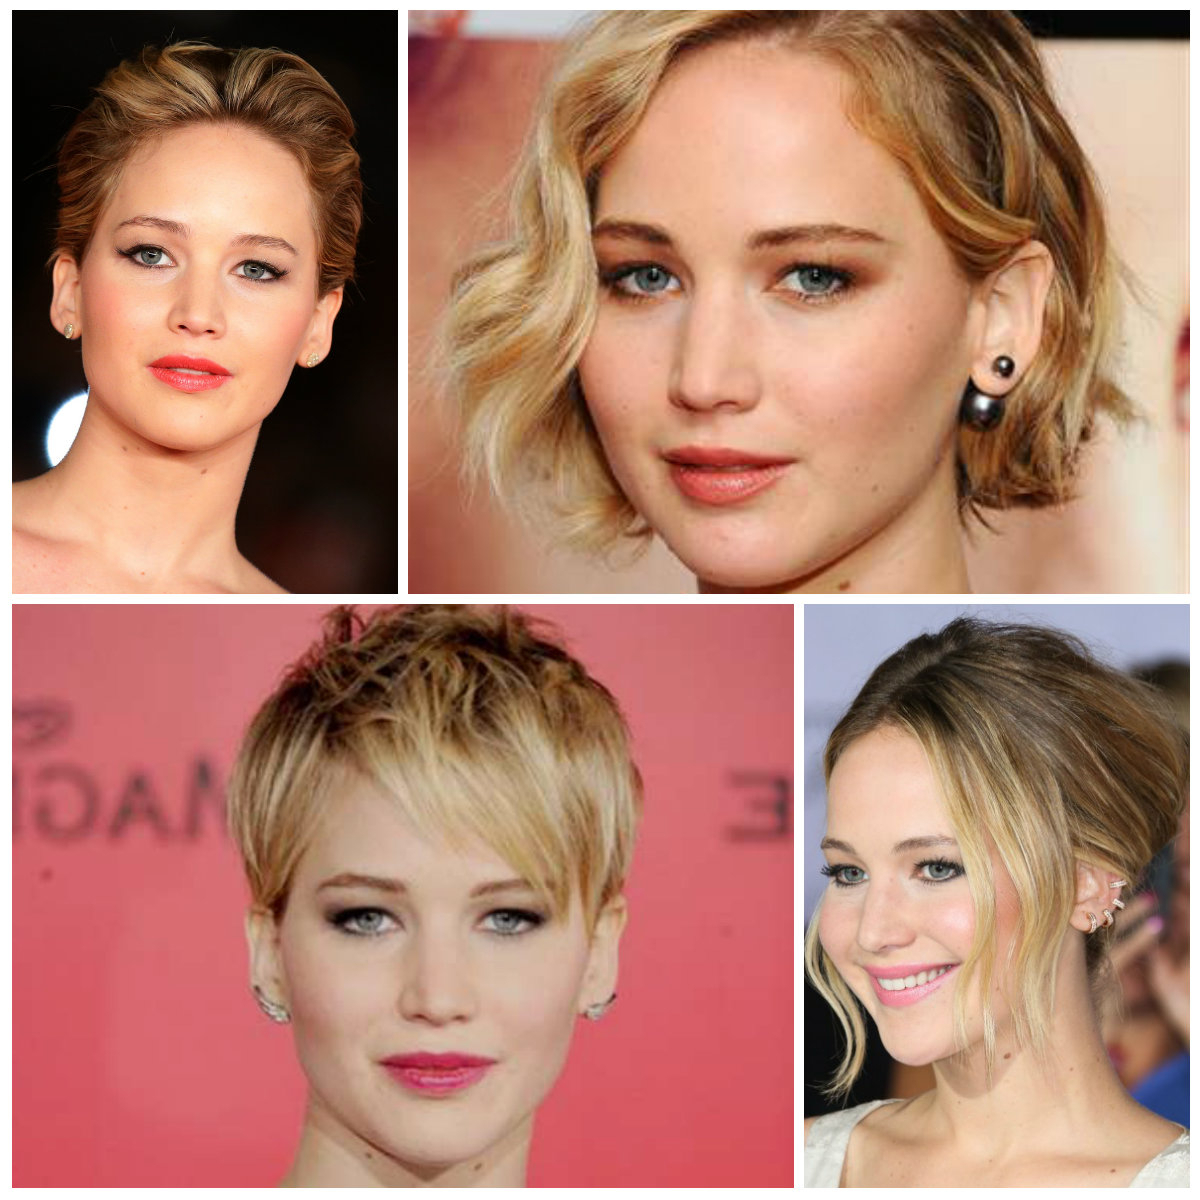 Jennifer Lawrence's Best Short Hairstyles To Copy In 2016 | 2019 regarding Jennifer Lawrence Short Hairstyles